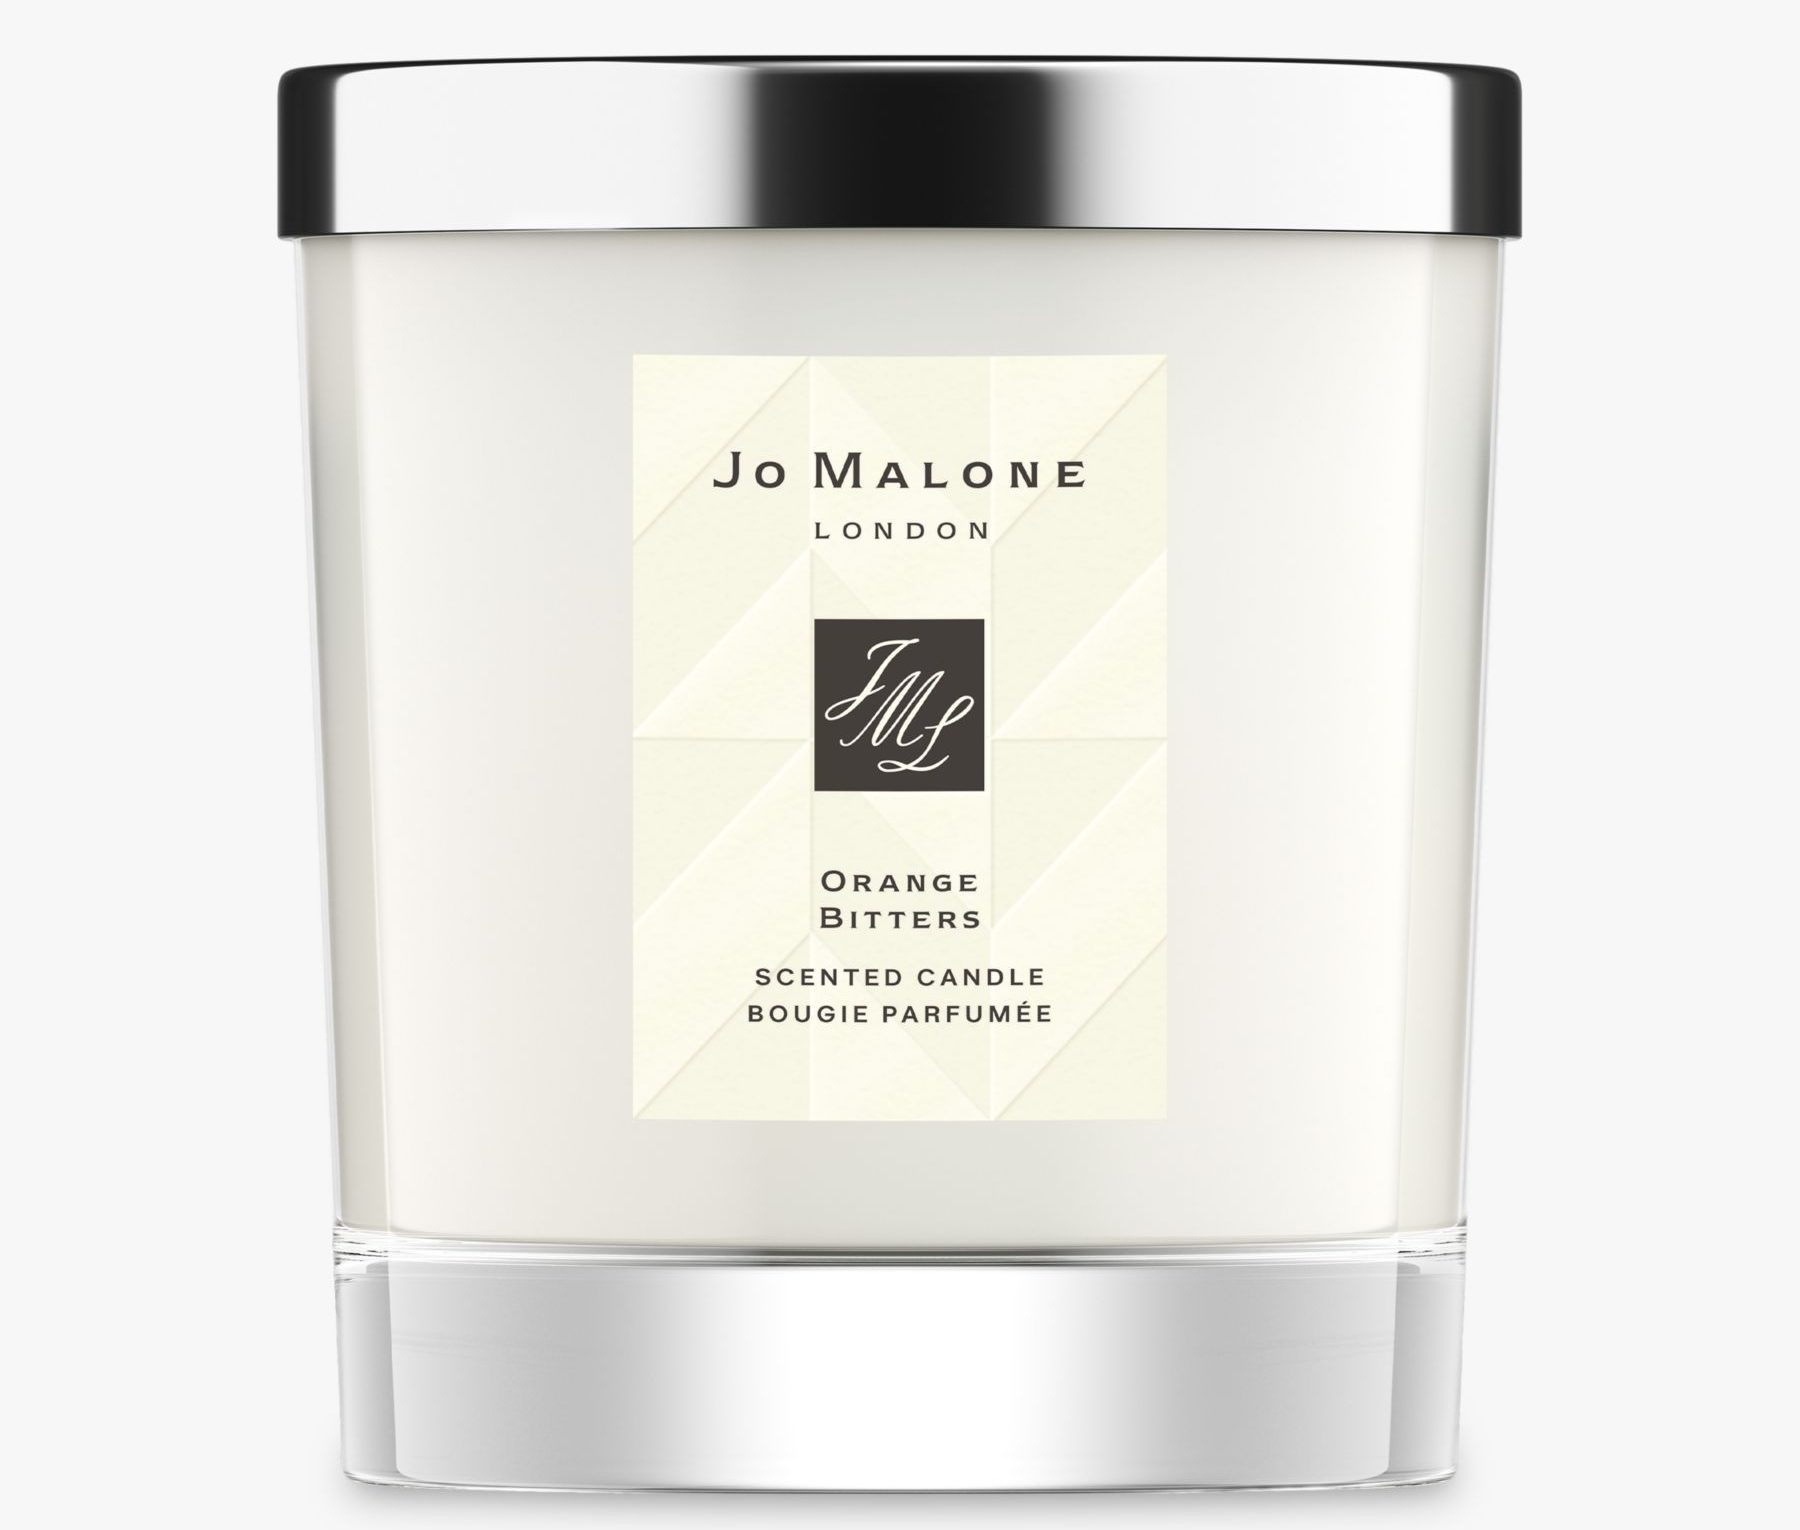 My Celebrity Life – Jo Malone London Orange Bitters Home Scented Candle